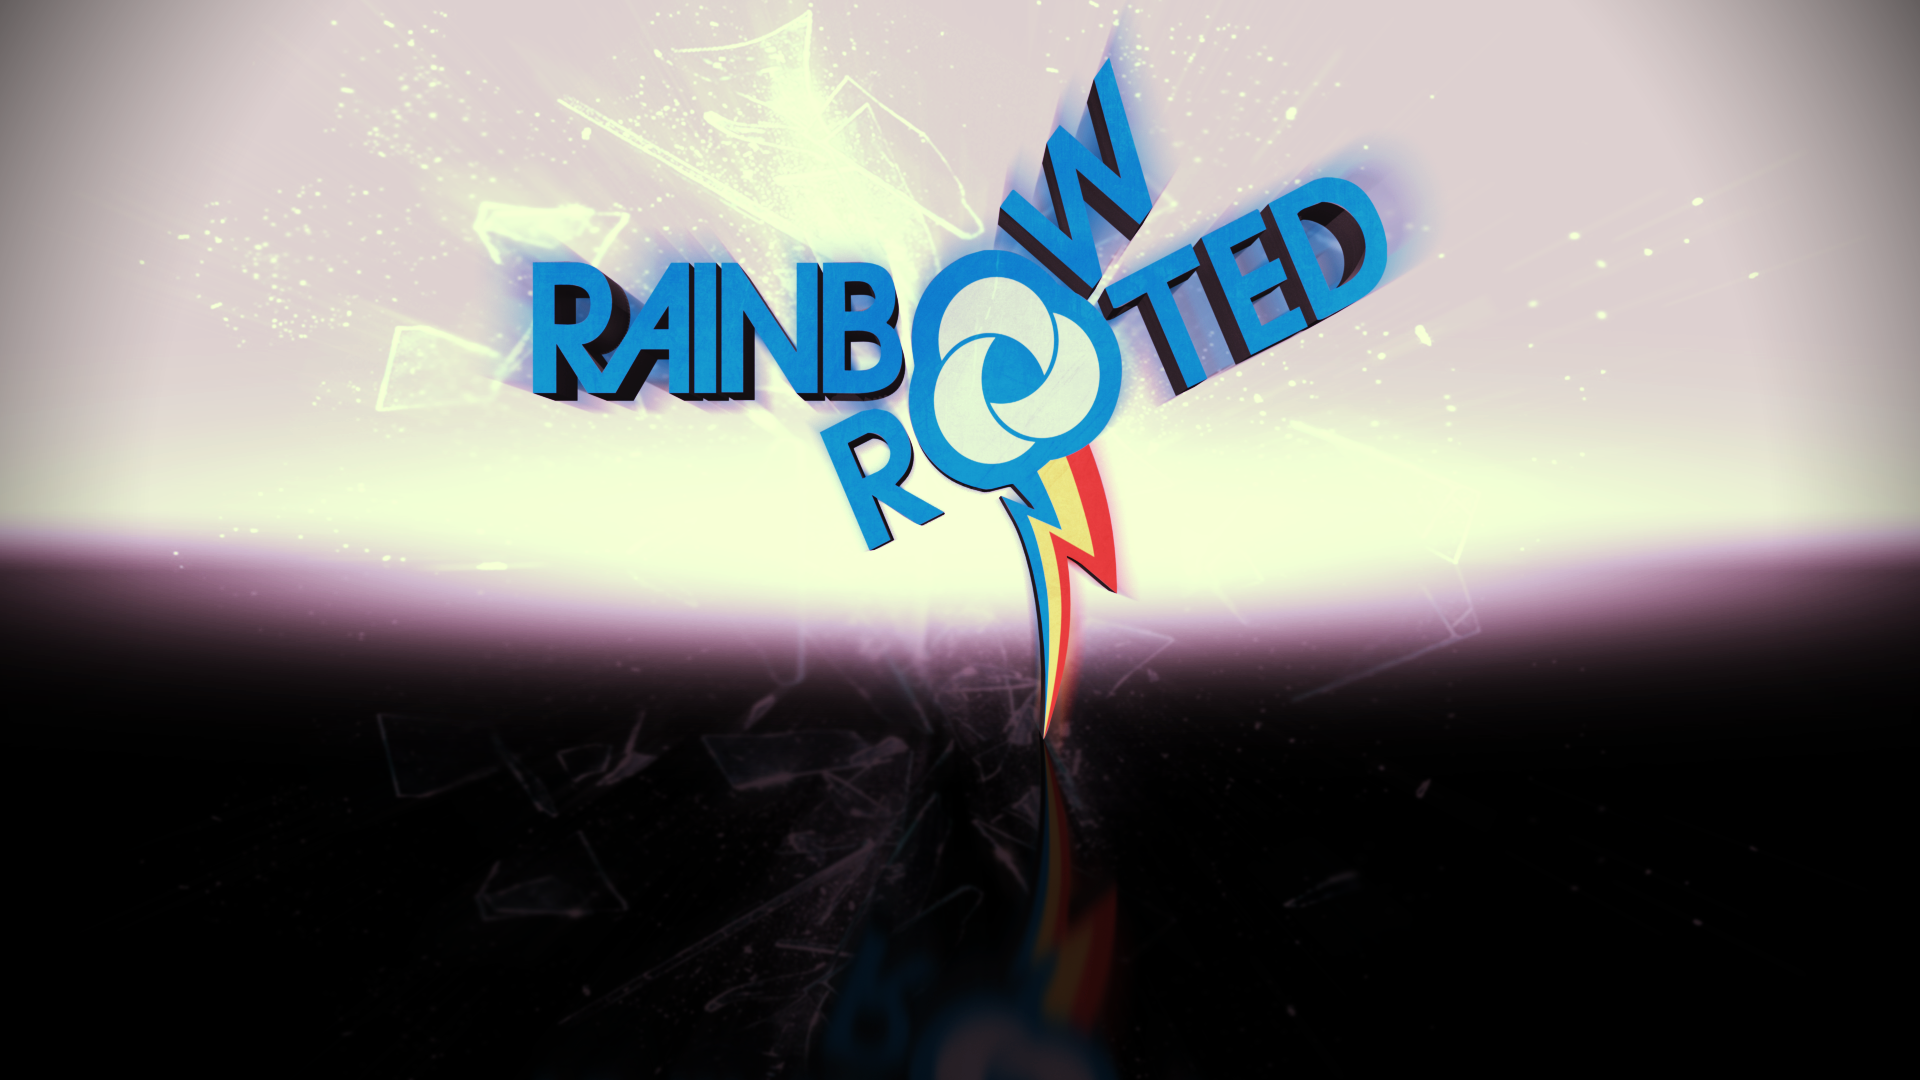 Rainbow and Rooted 3D by BronyYAY123